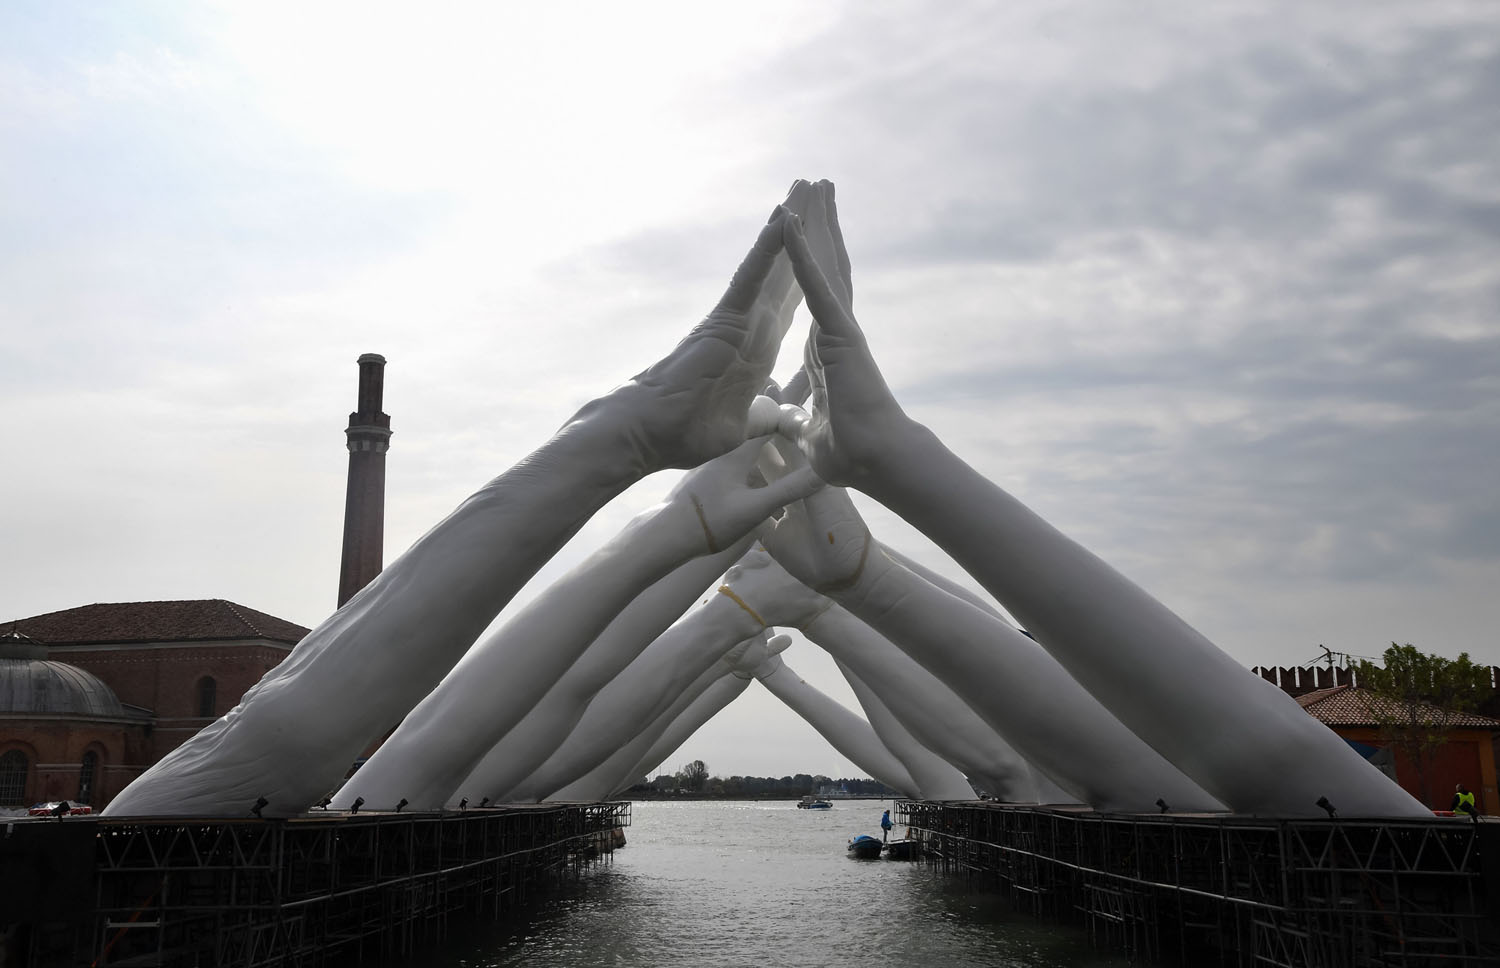 Italian artist Lorenzo Quinn's  Building Bridges , an installation showing six pairs of arching hands creating a bridge over a Venetian waterway in the Arsenal shipyard.